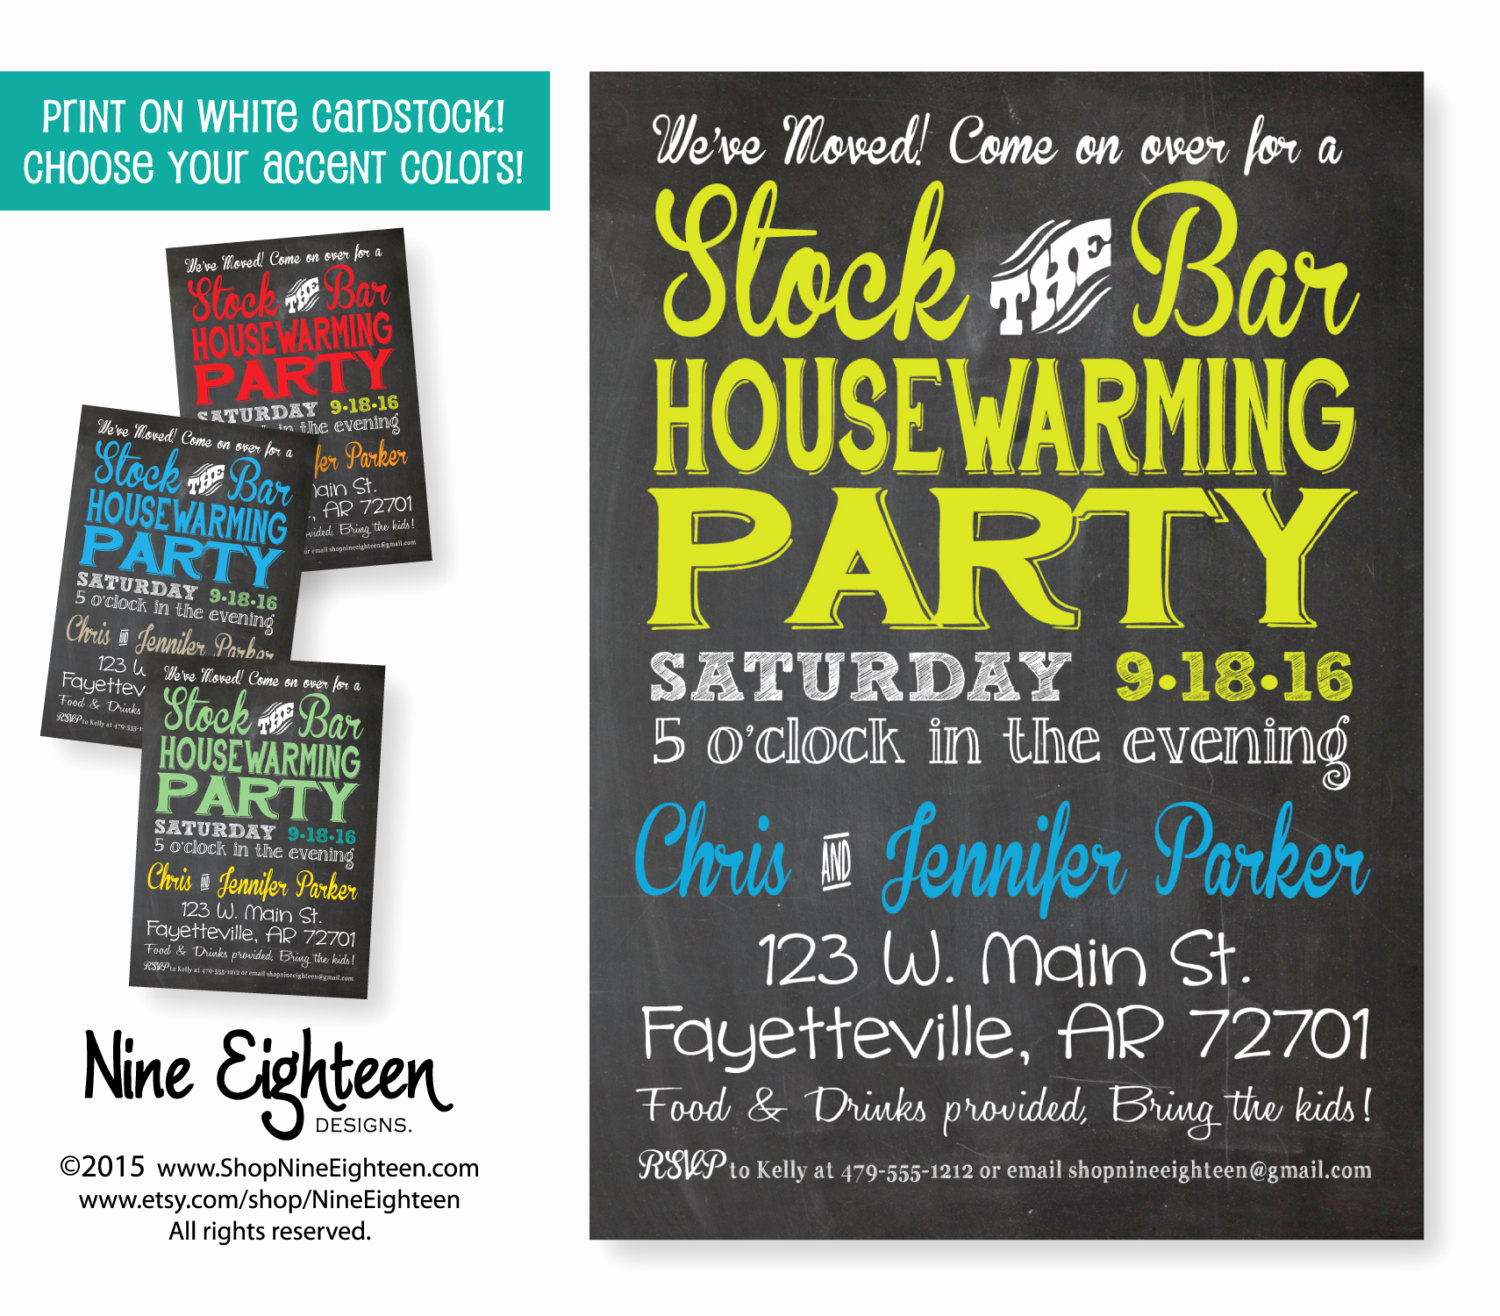 Housewarming Party Invitation Wording Lovely Stock the Bar Housewarming Party Invitation Custom by